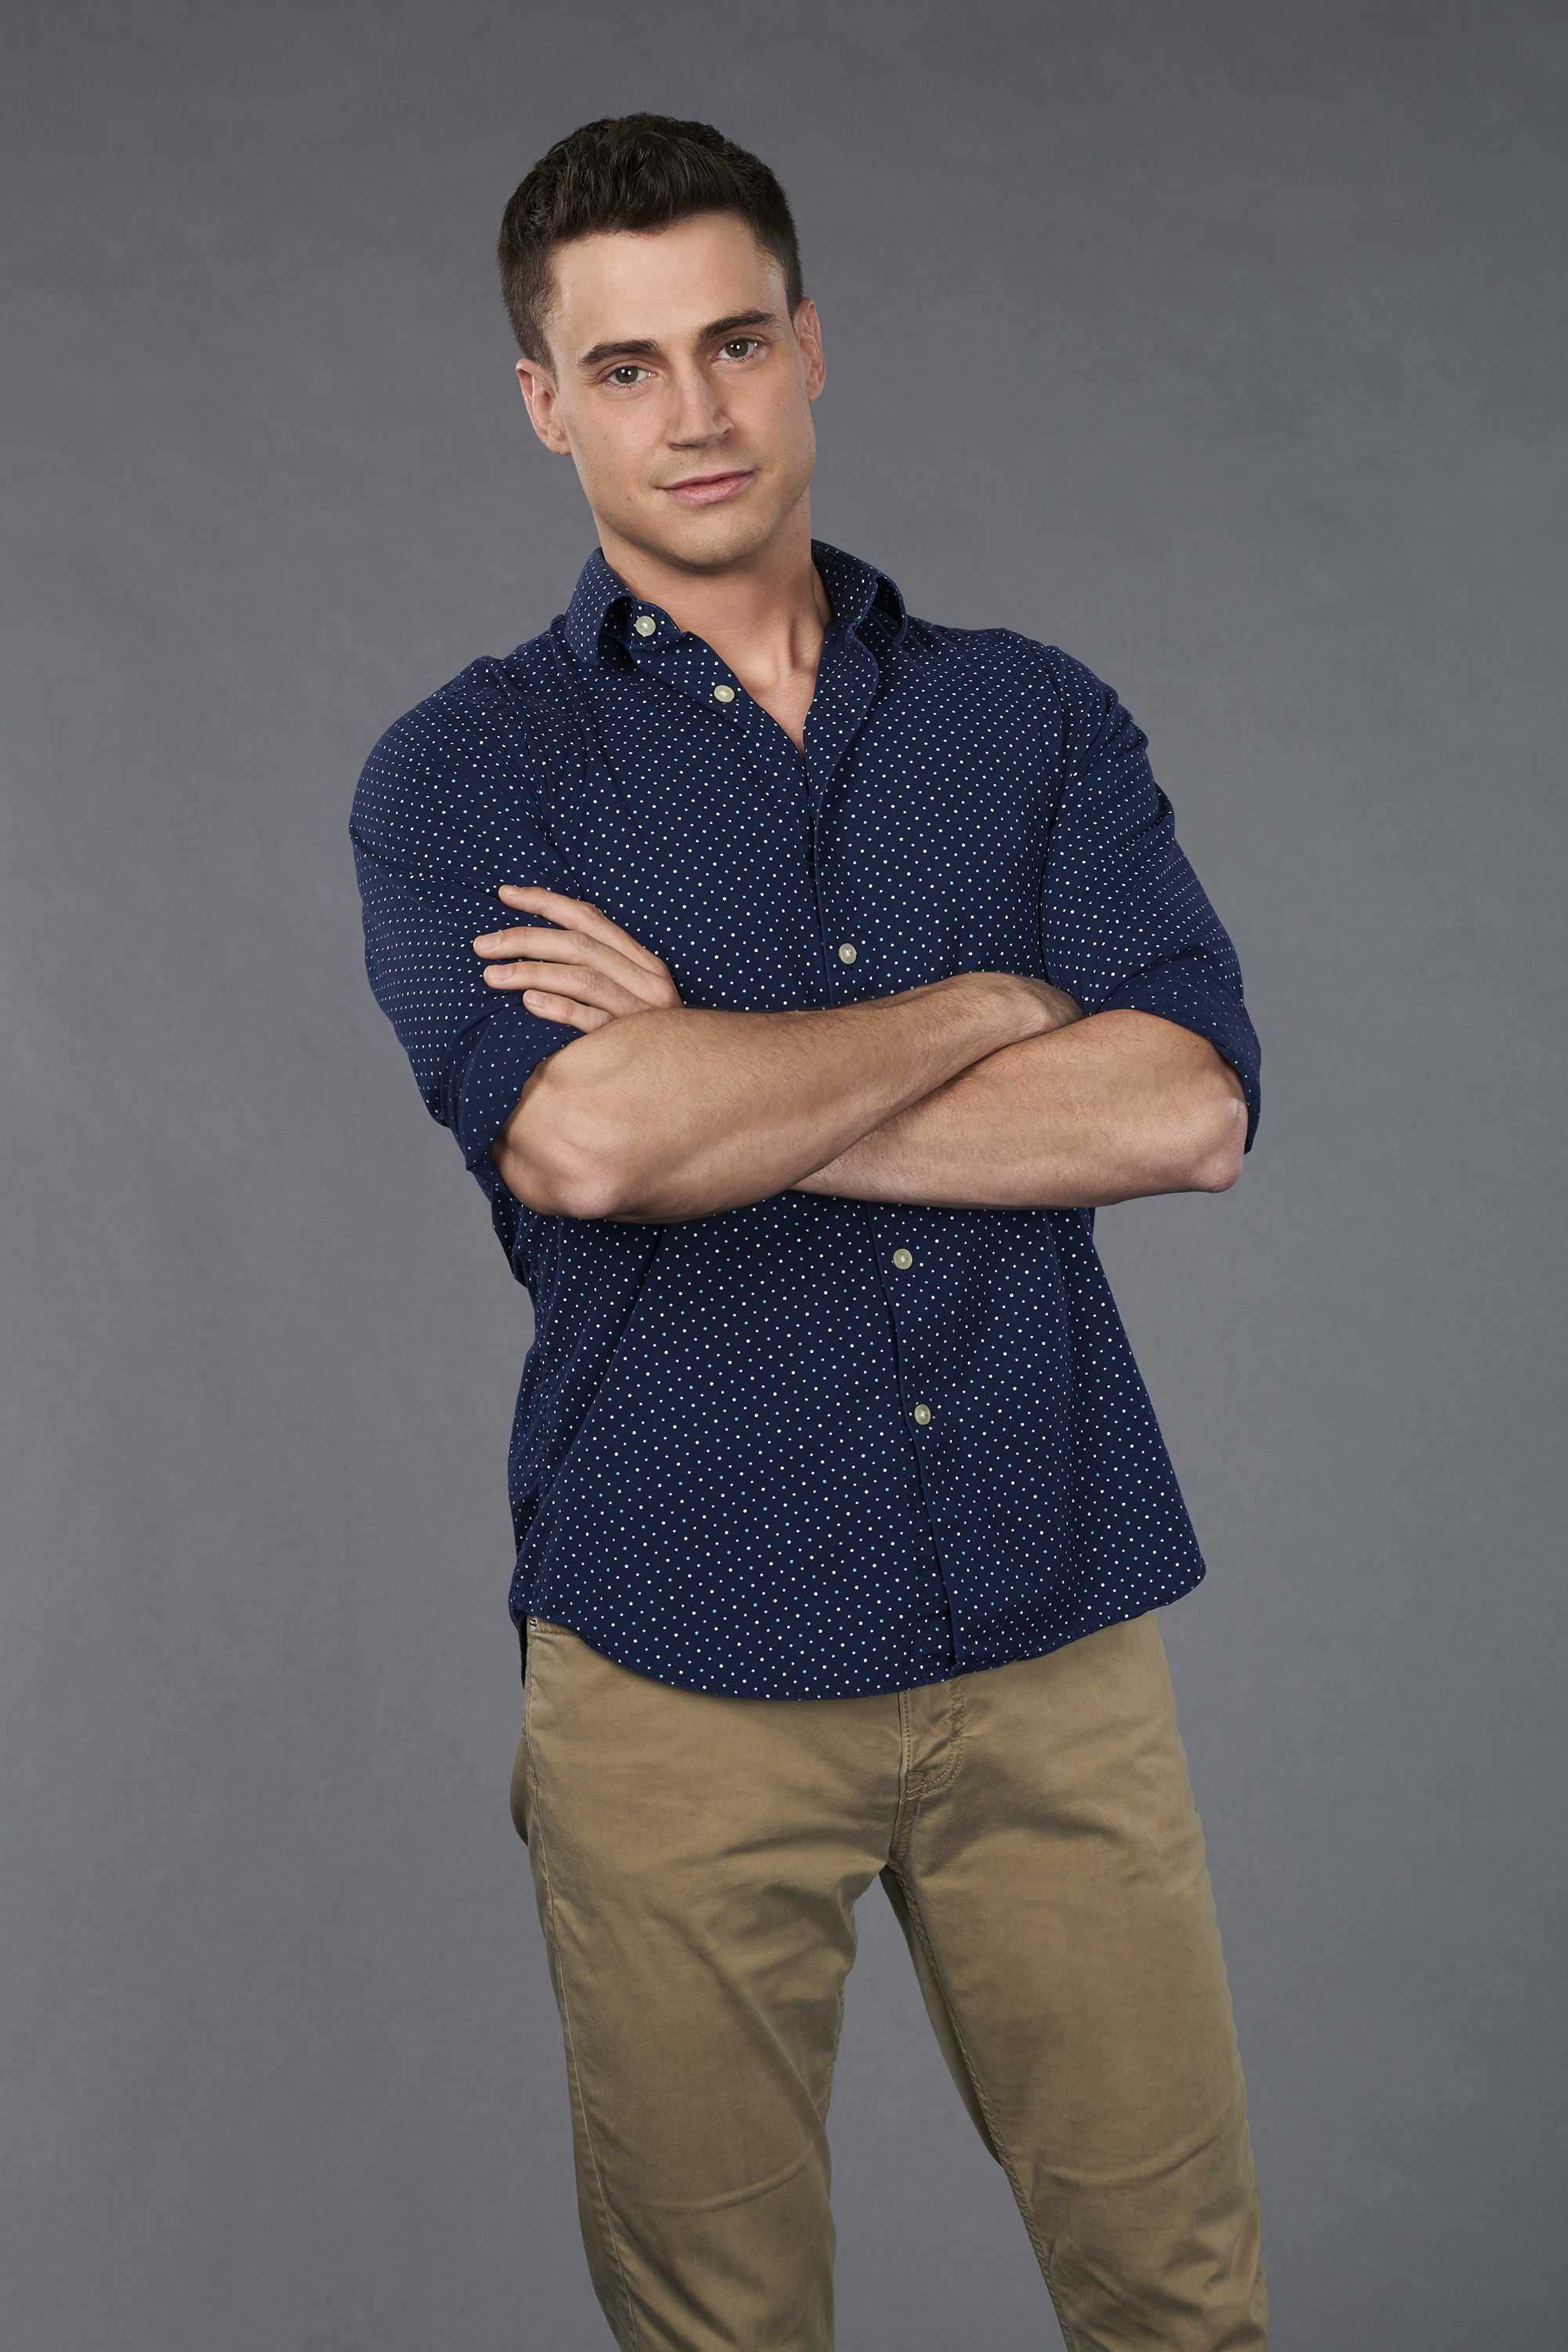 Bachelorette 15 - Brian Bowles - *Sleuthing Spoilers* 03200cc0-119d-4811-b69d-0f3d55bb16f2